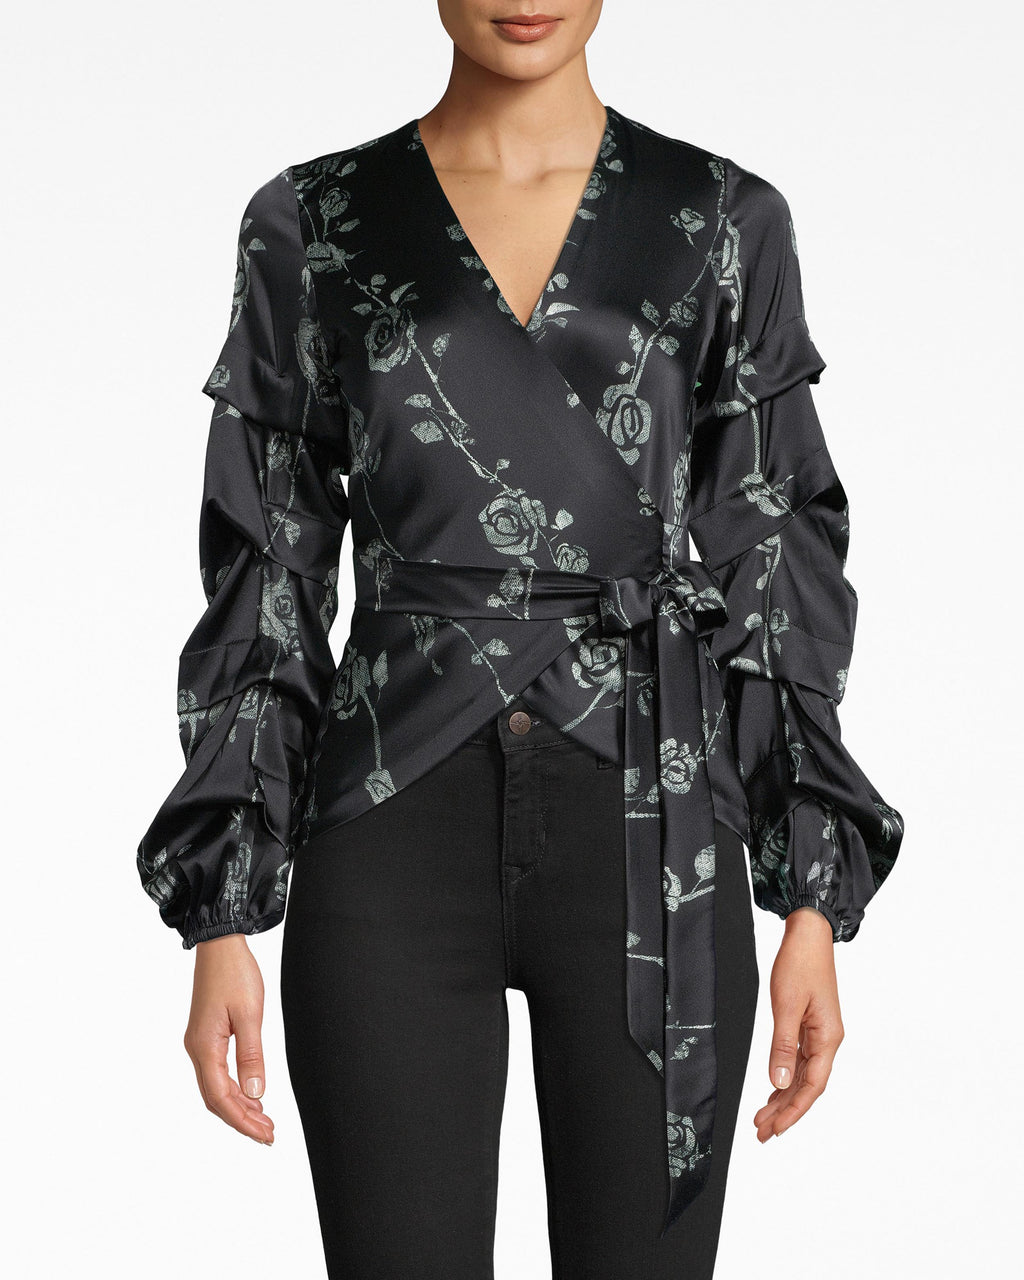 BG20013 - WRAP BLOUSE WITH TIDAL PLEATS - tops - blouses - The wrap blouse: reimagined for the season. Structured sleeves are eye-popping complements to the fitted bodice. A draping tie cinches the waist and hits the upper thigh. Pair with denim and stun.